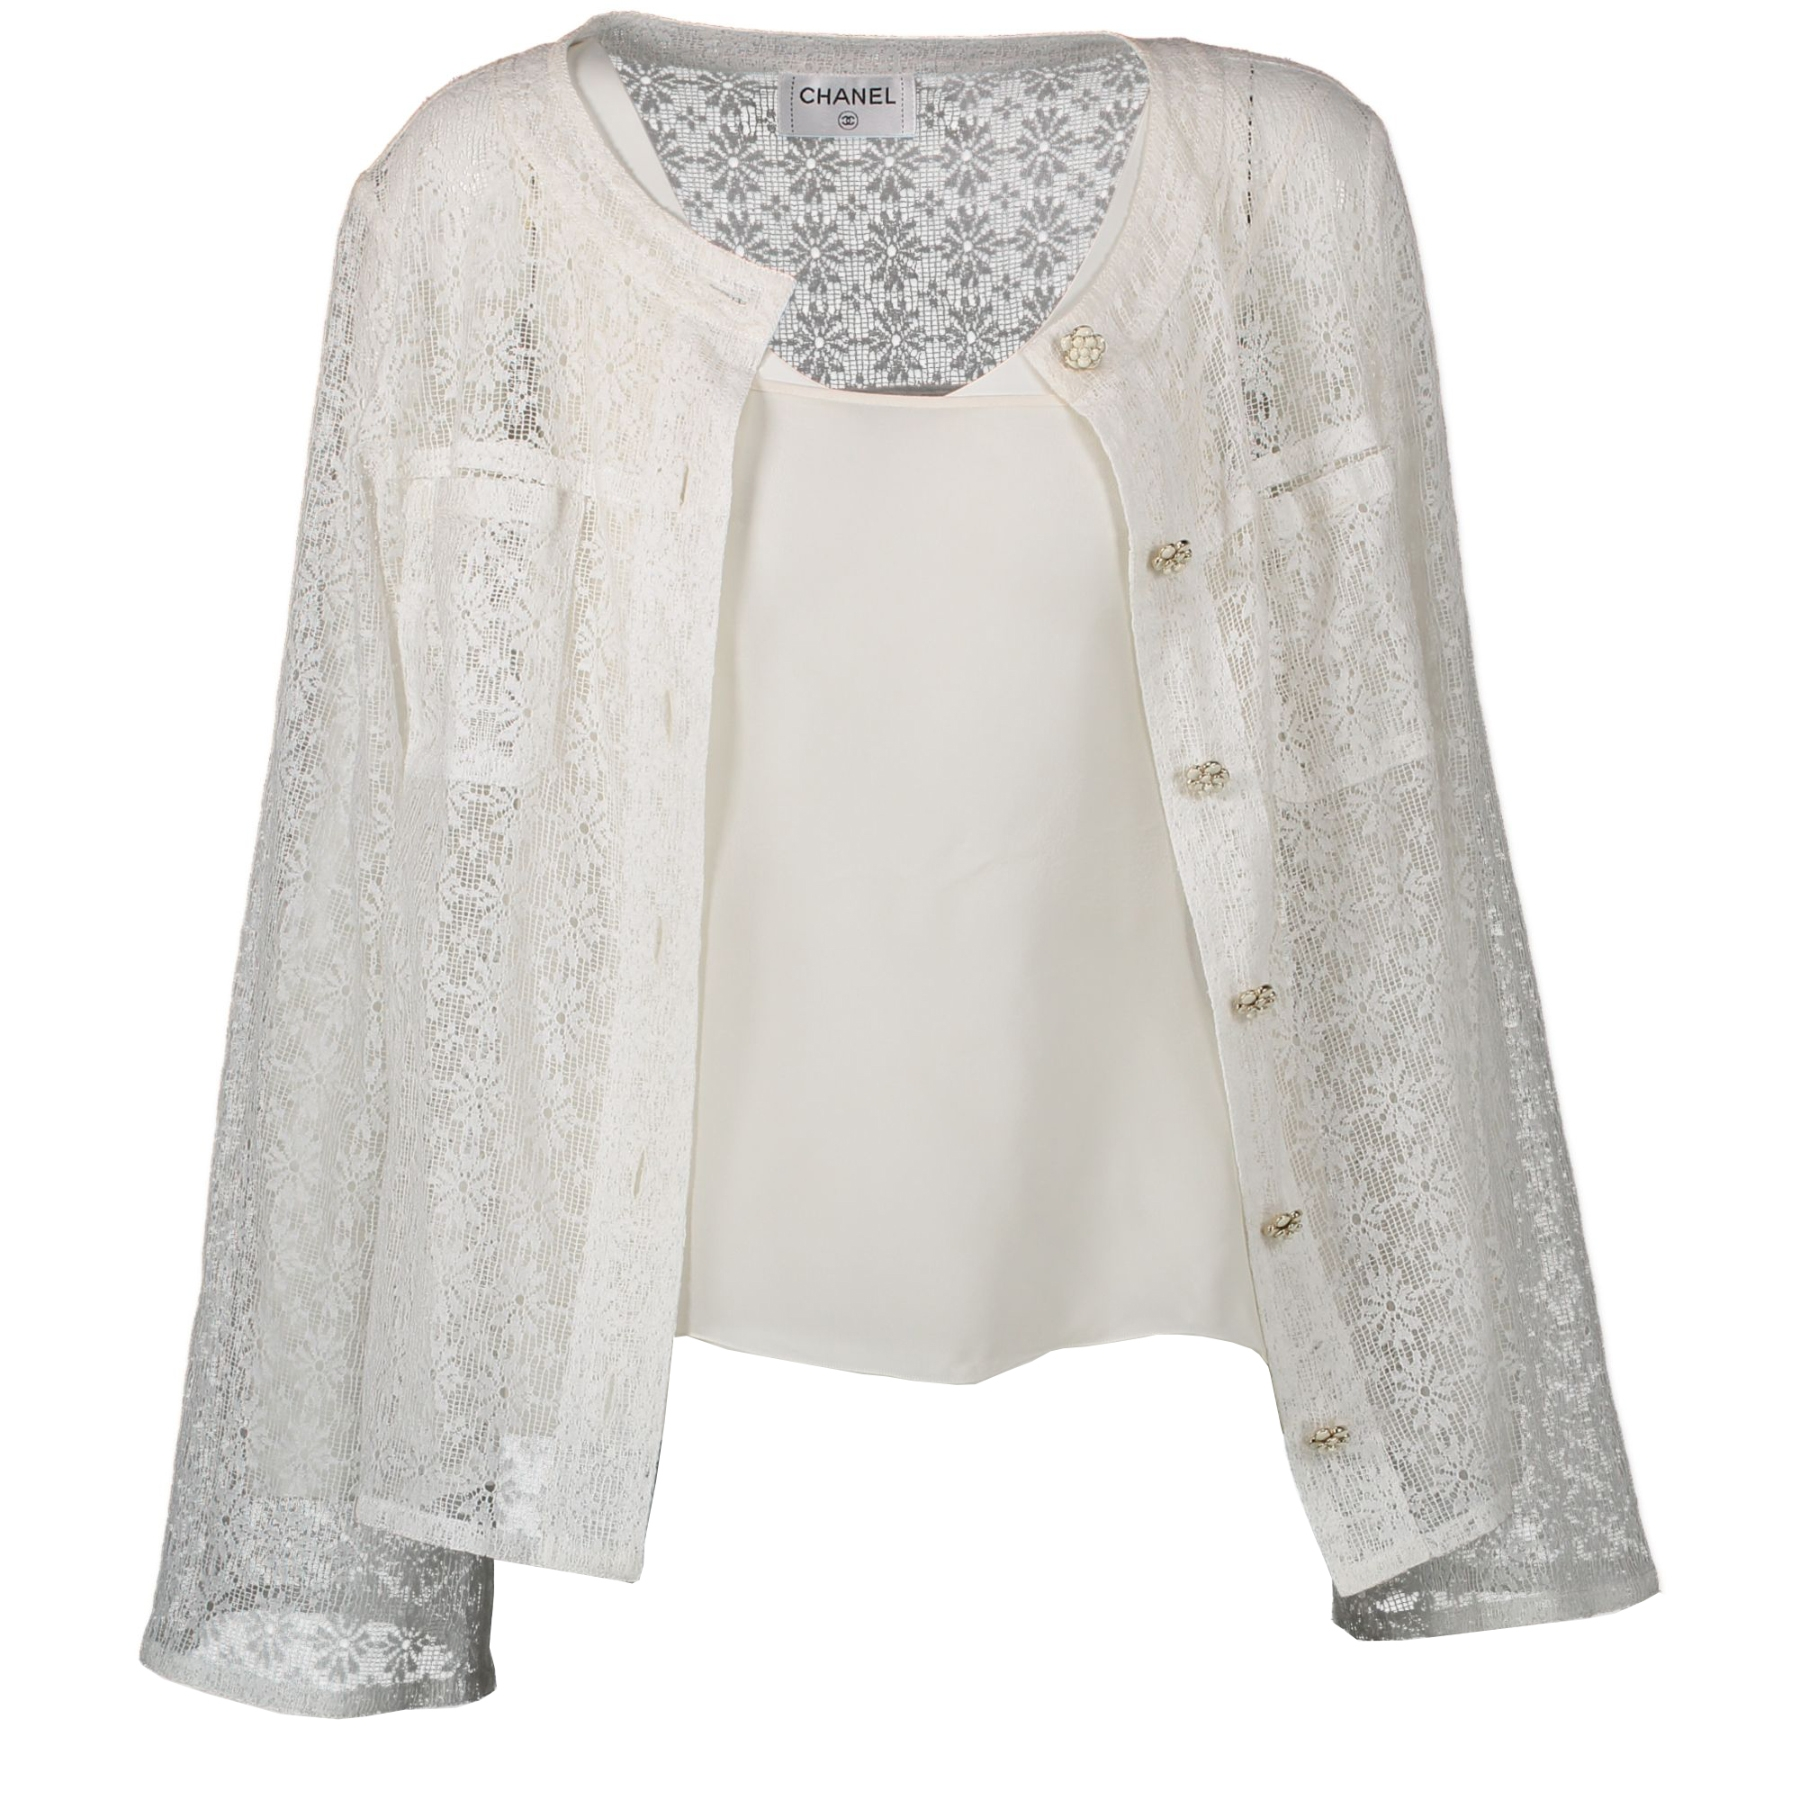 We buy and sell your authentic designer Chanel White Cotton Crochet Vest with Top